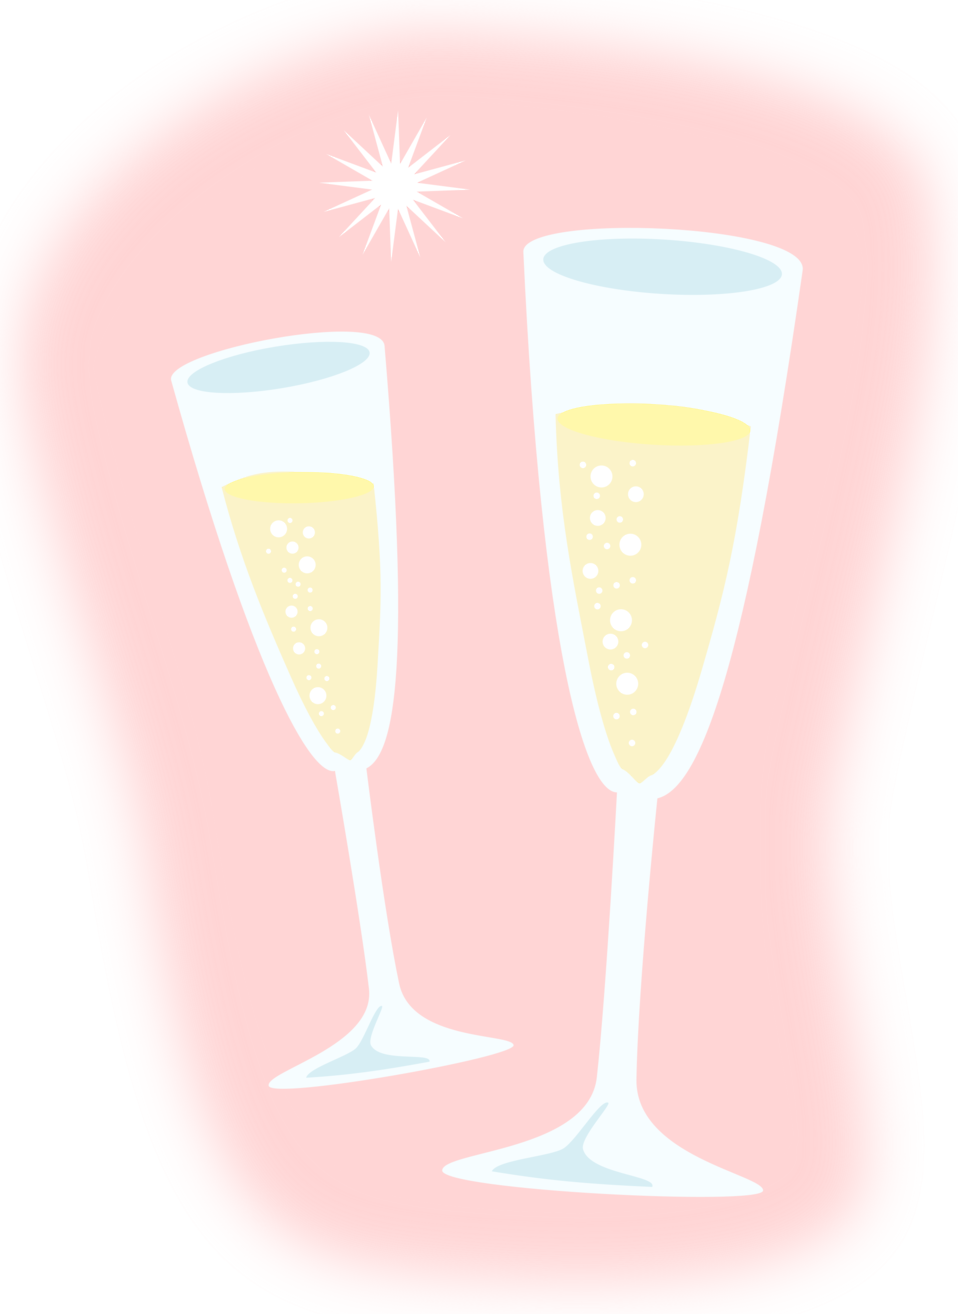 Champagne | Free Stock Photo | Illustration of champagne glasses ...